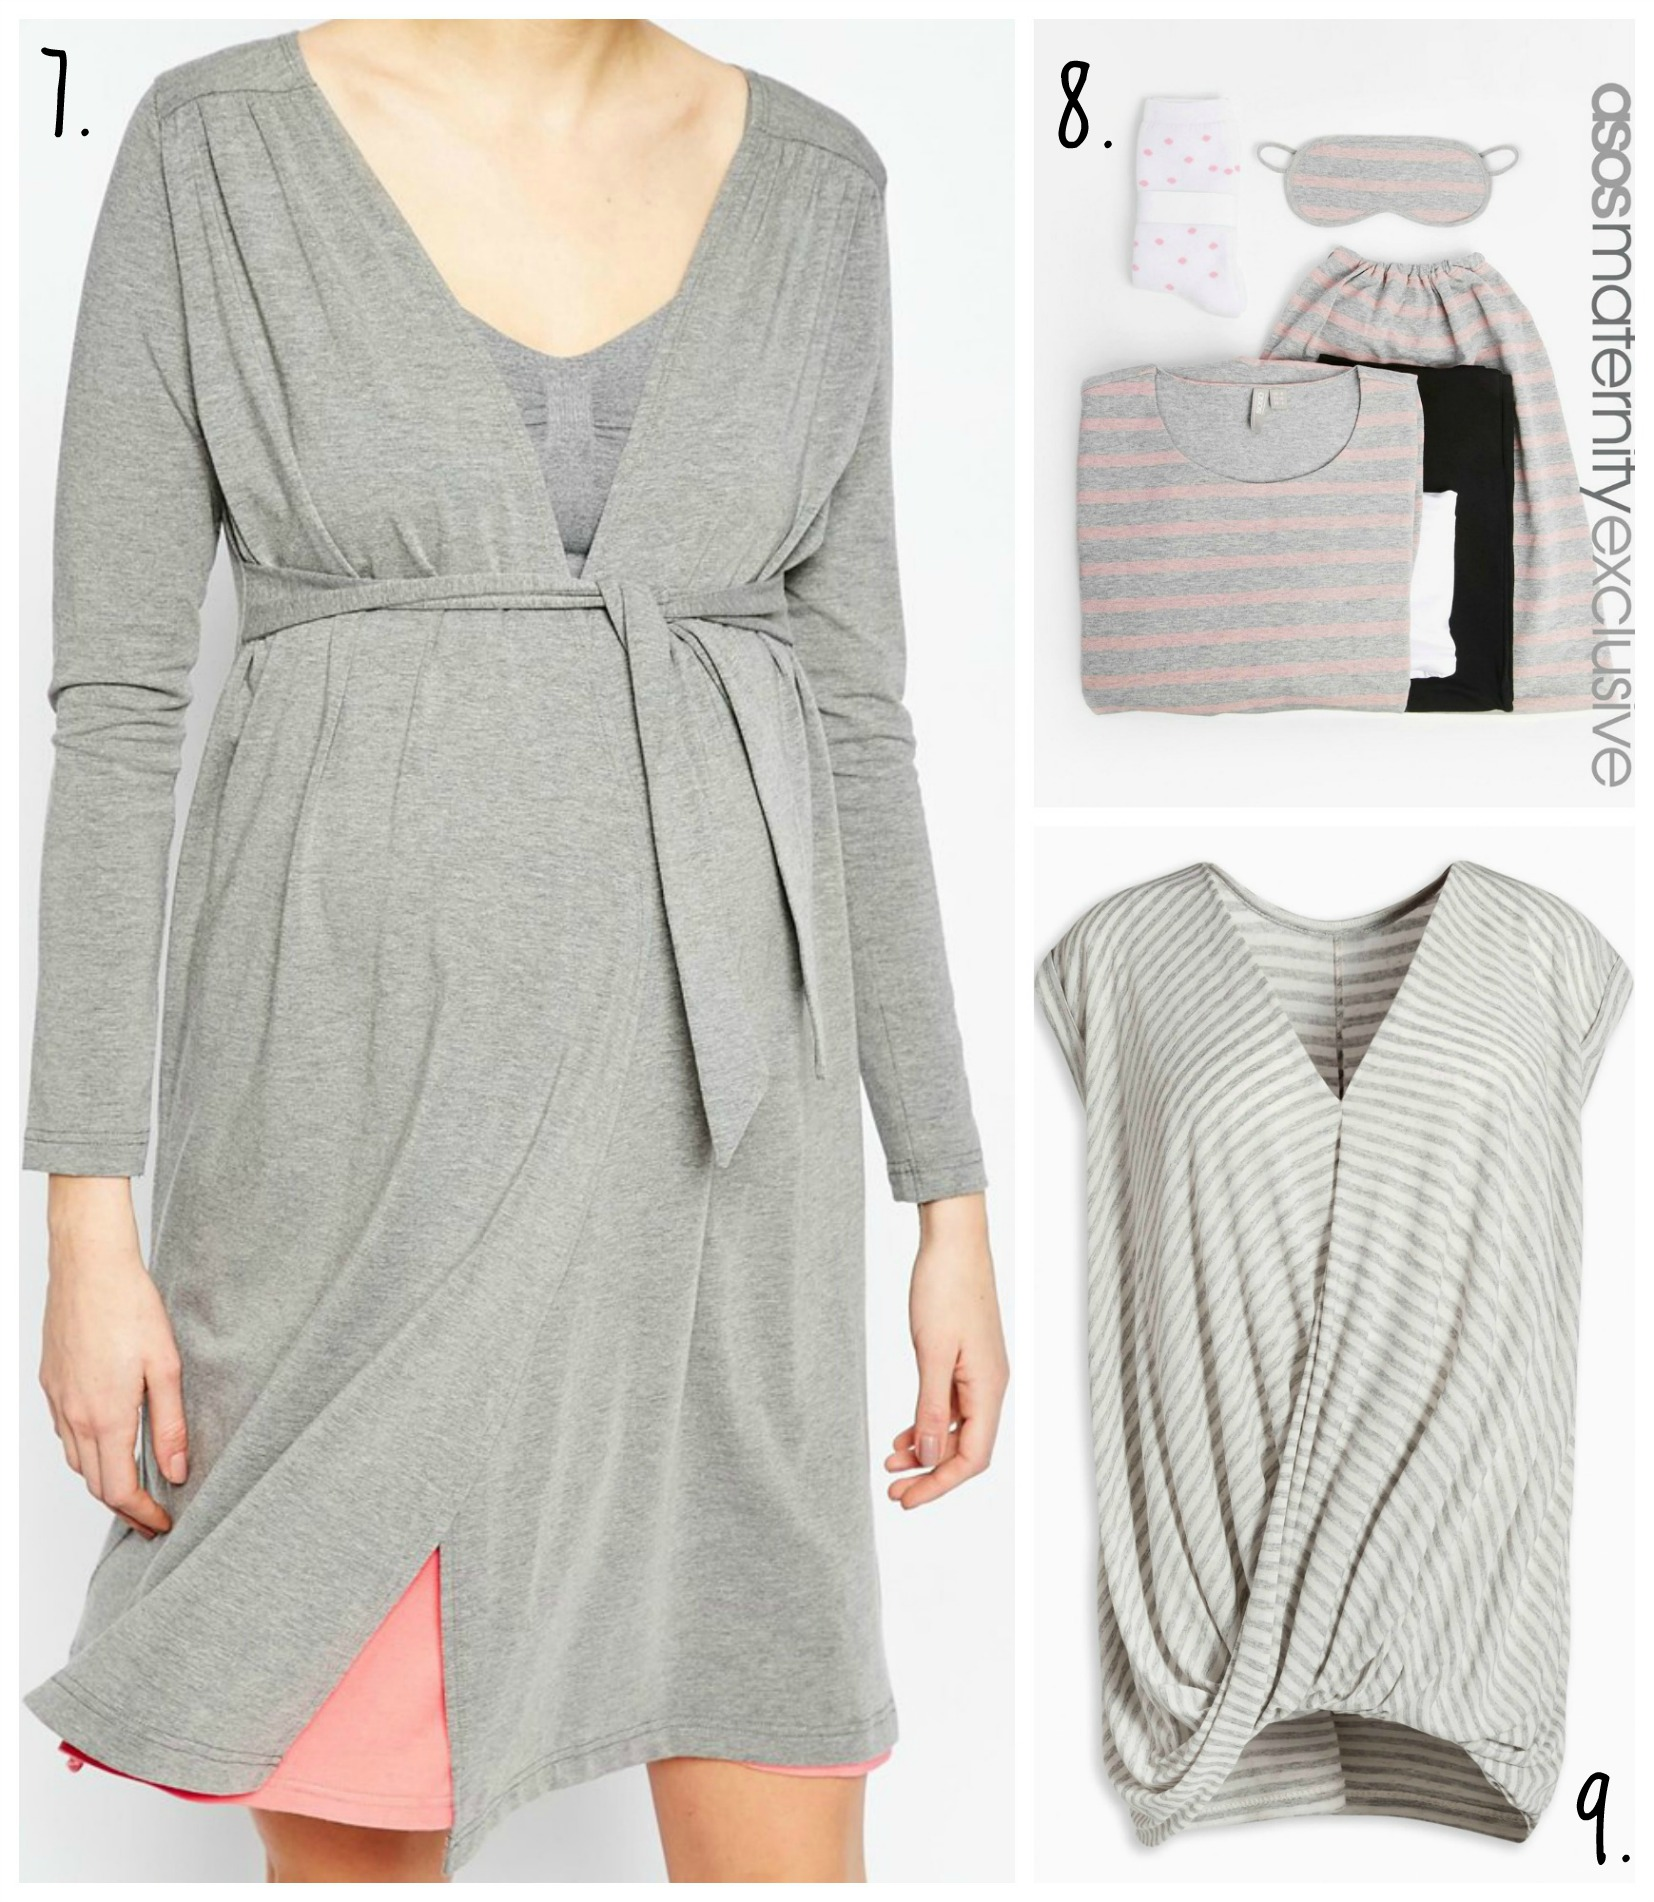 maternity hospital clothes 2